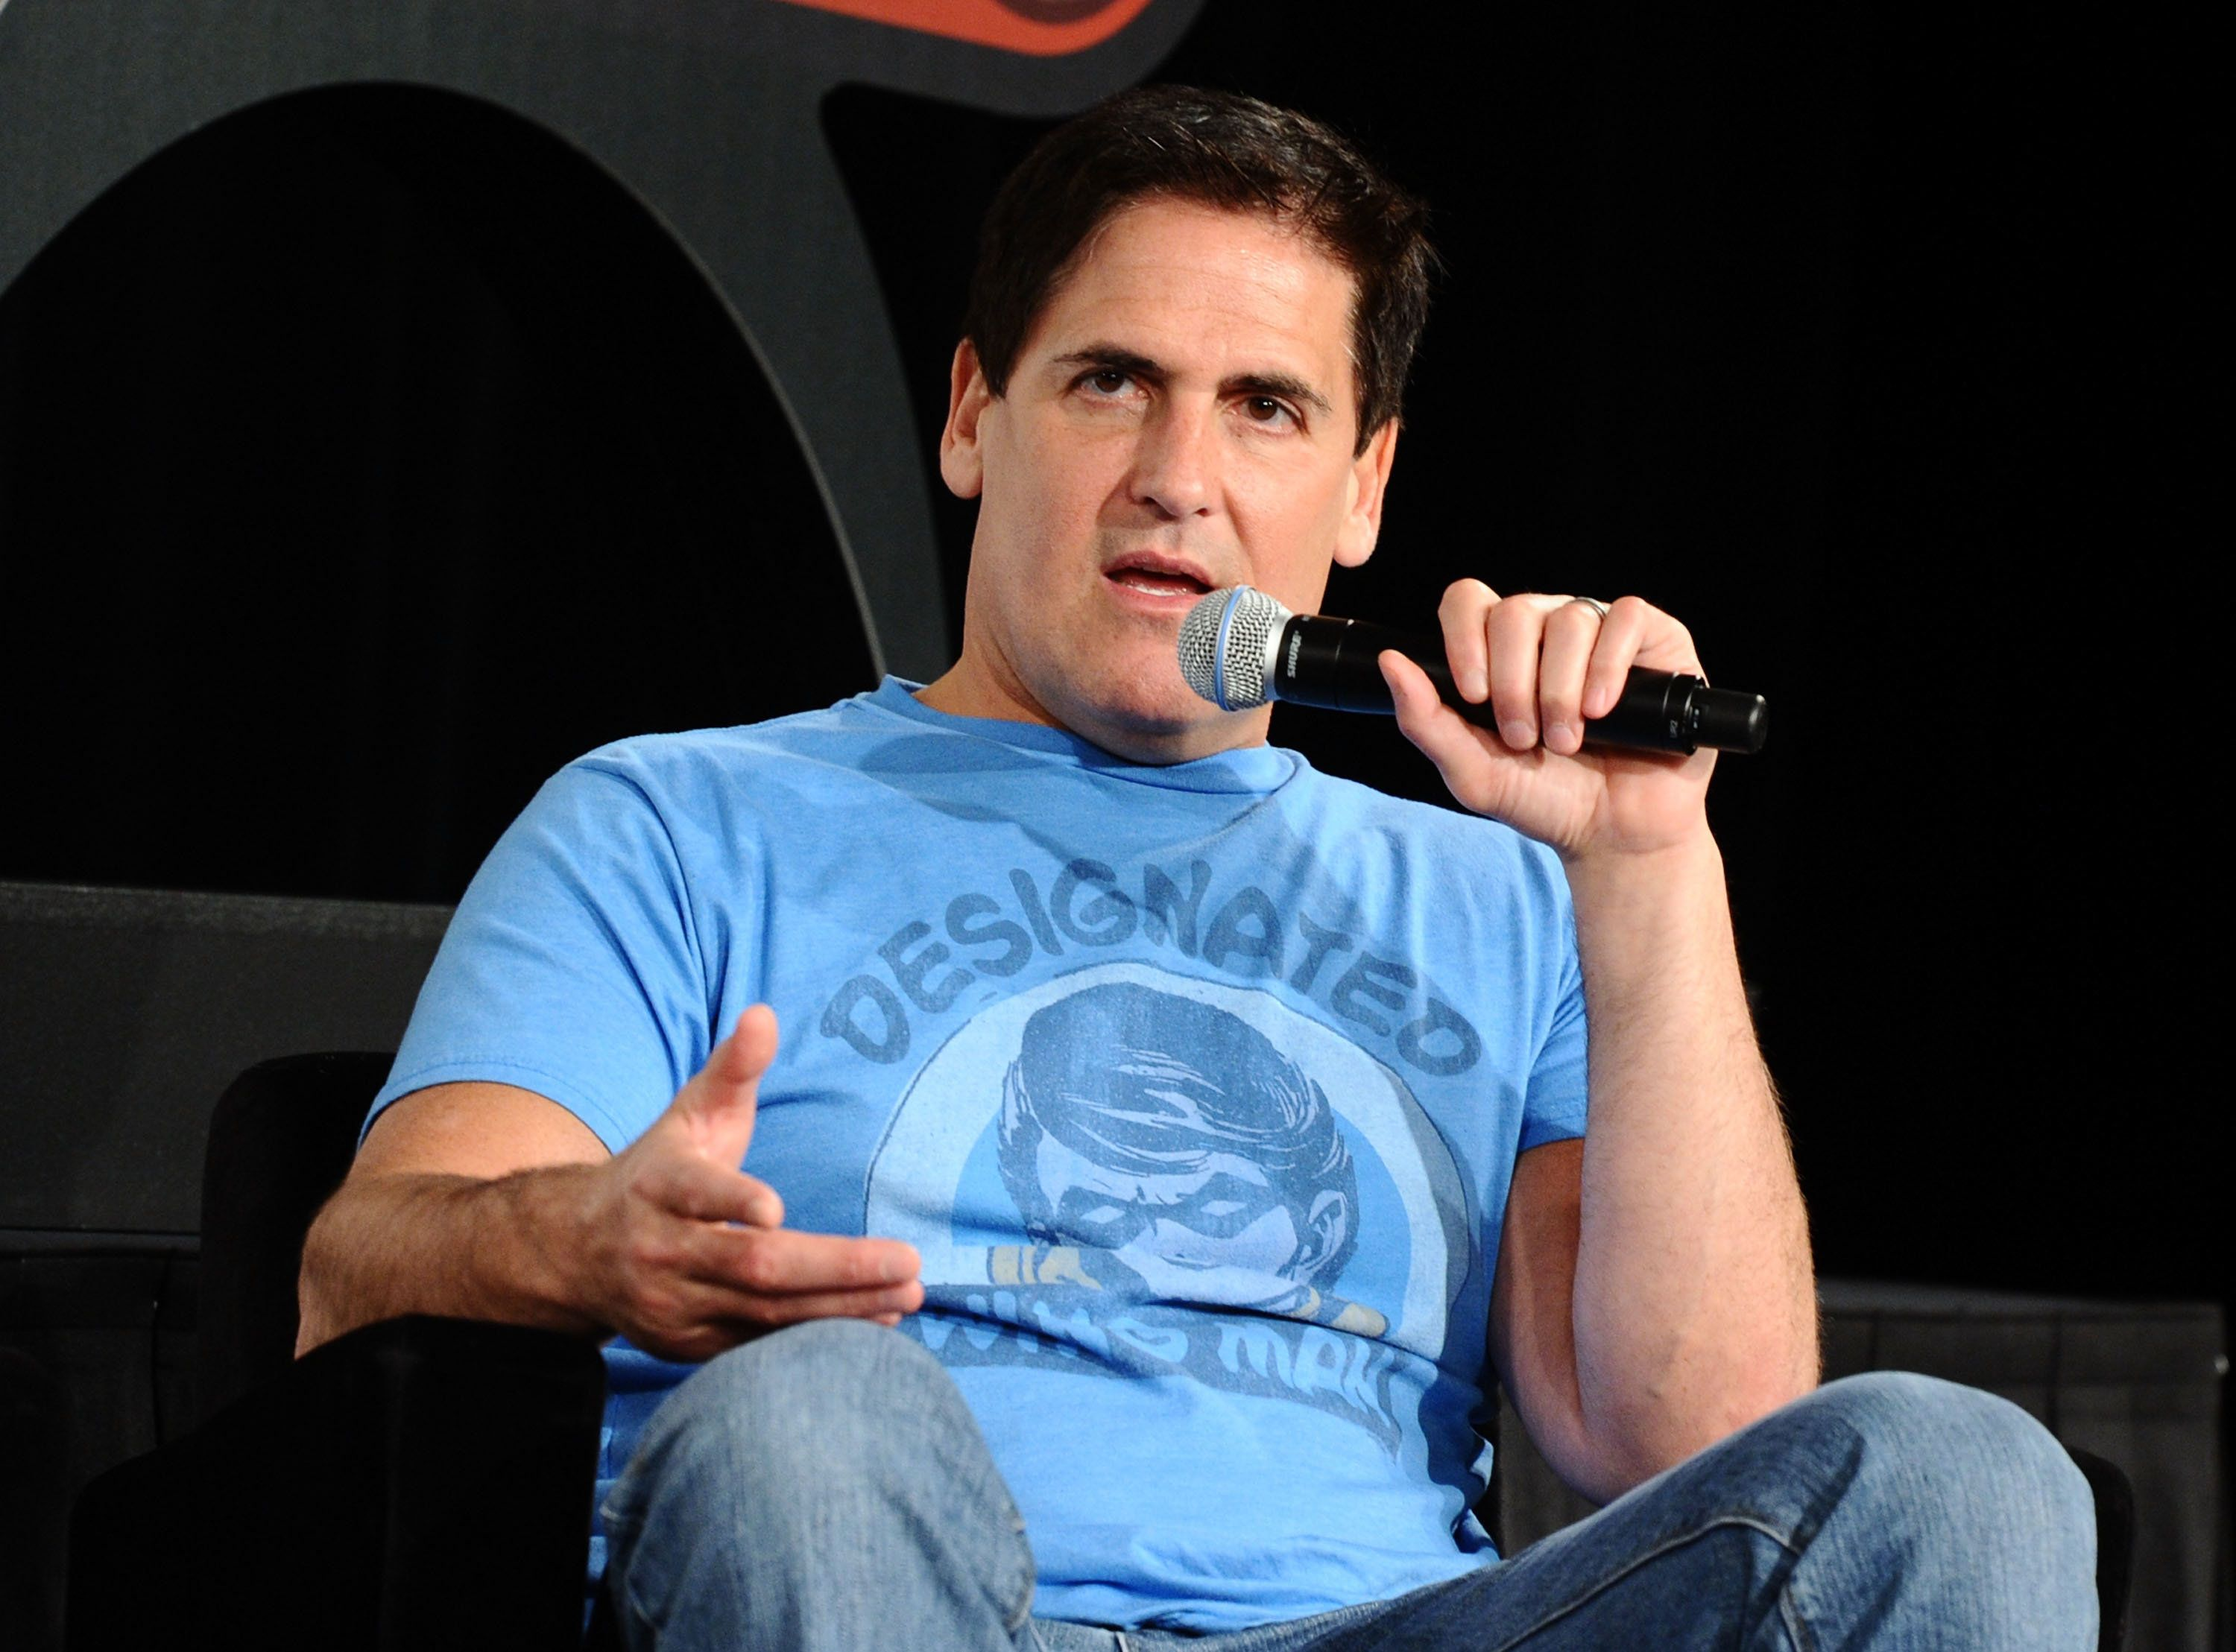 Mark Cuban passed lie detector test for 2011 sexual assault allegation